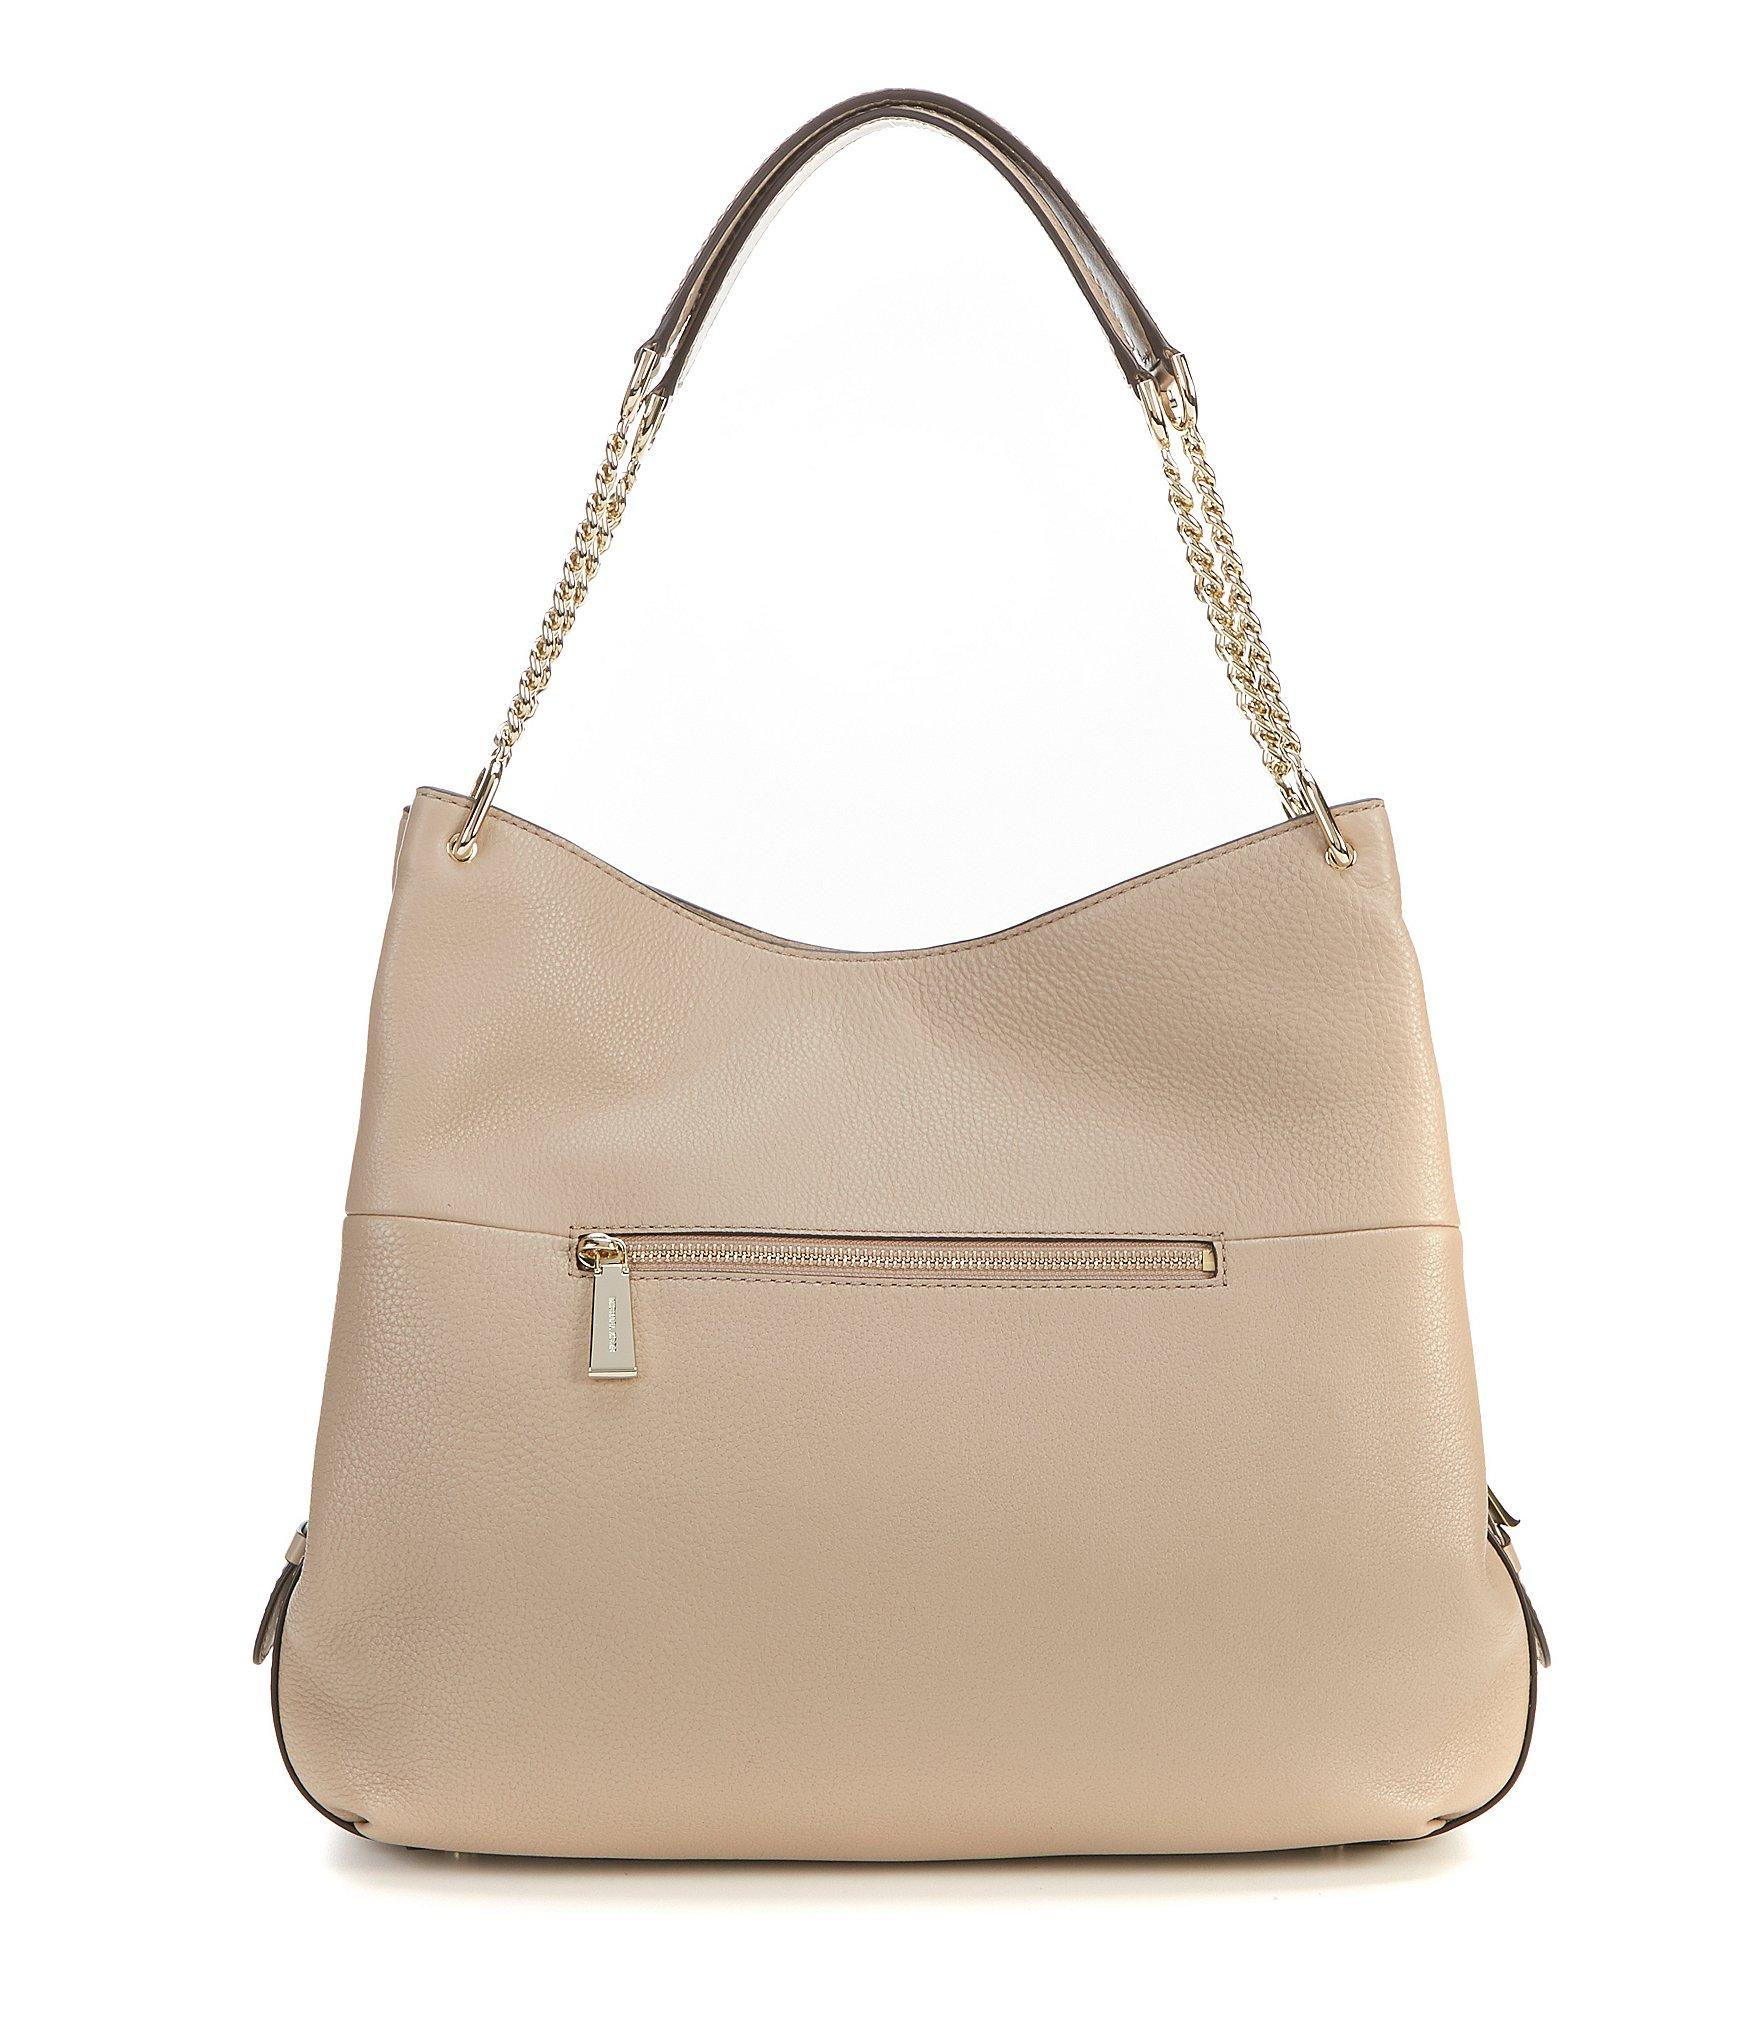 f38c1bae4ac33 MICHAEL Michael Kors - Multicolor Lillie Large Shoulder Tote Bag - Lyst.  View fullscreen